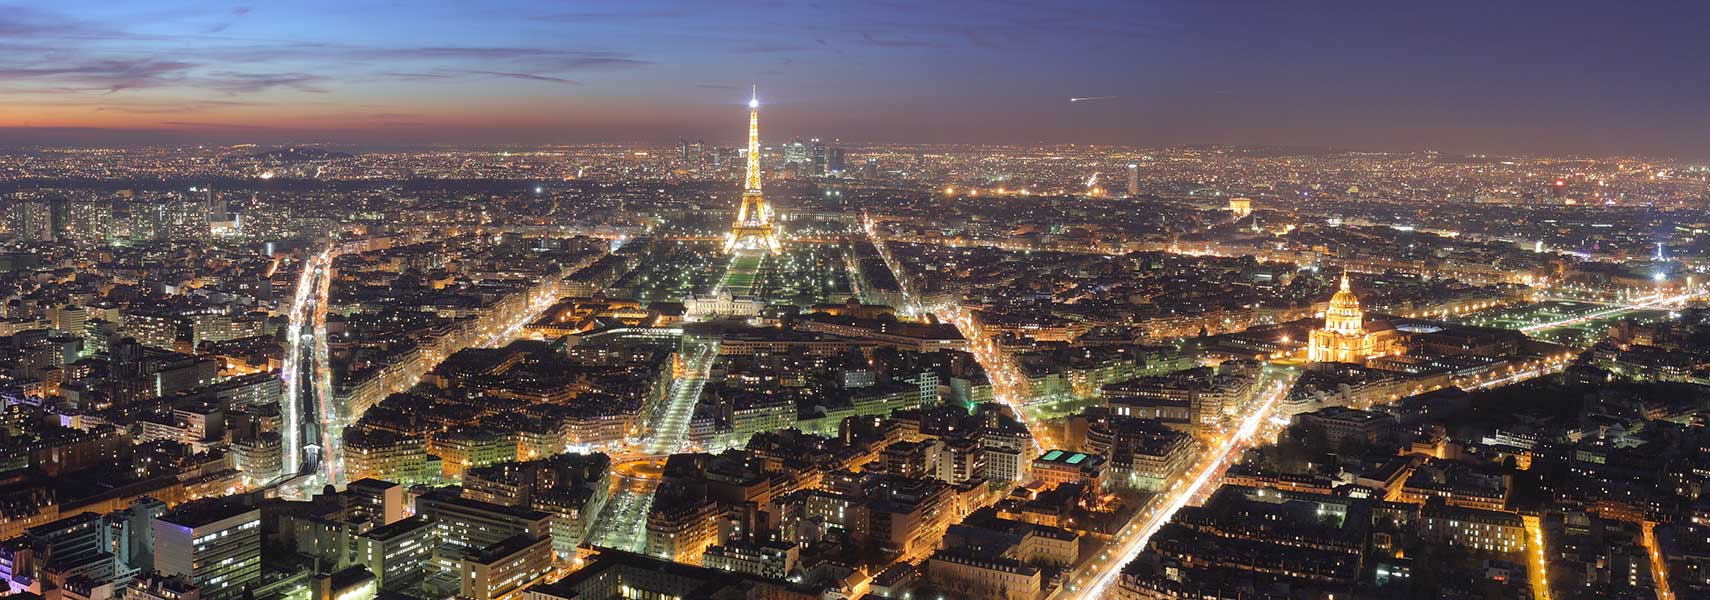 Famous Landmarks Satellite View Of The Eiffel Tower Paris France Nations Online Project